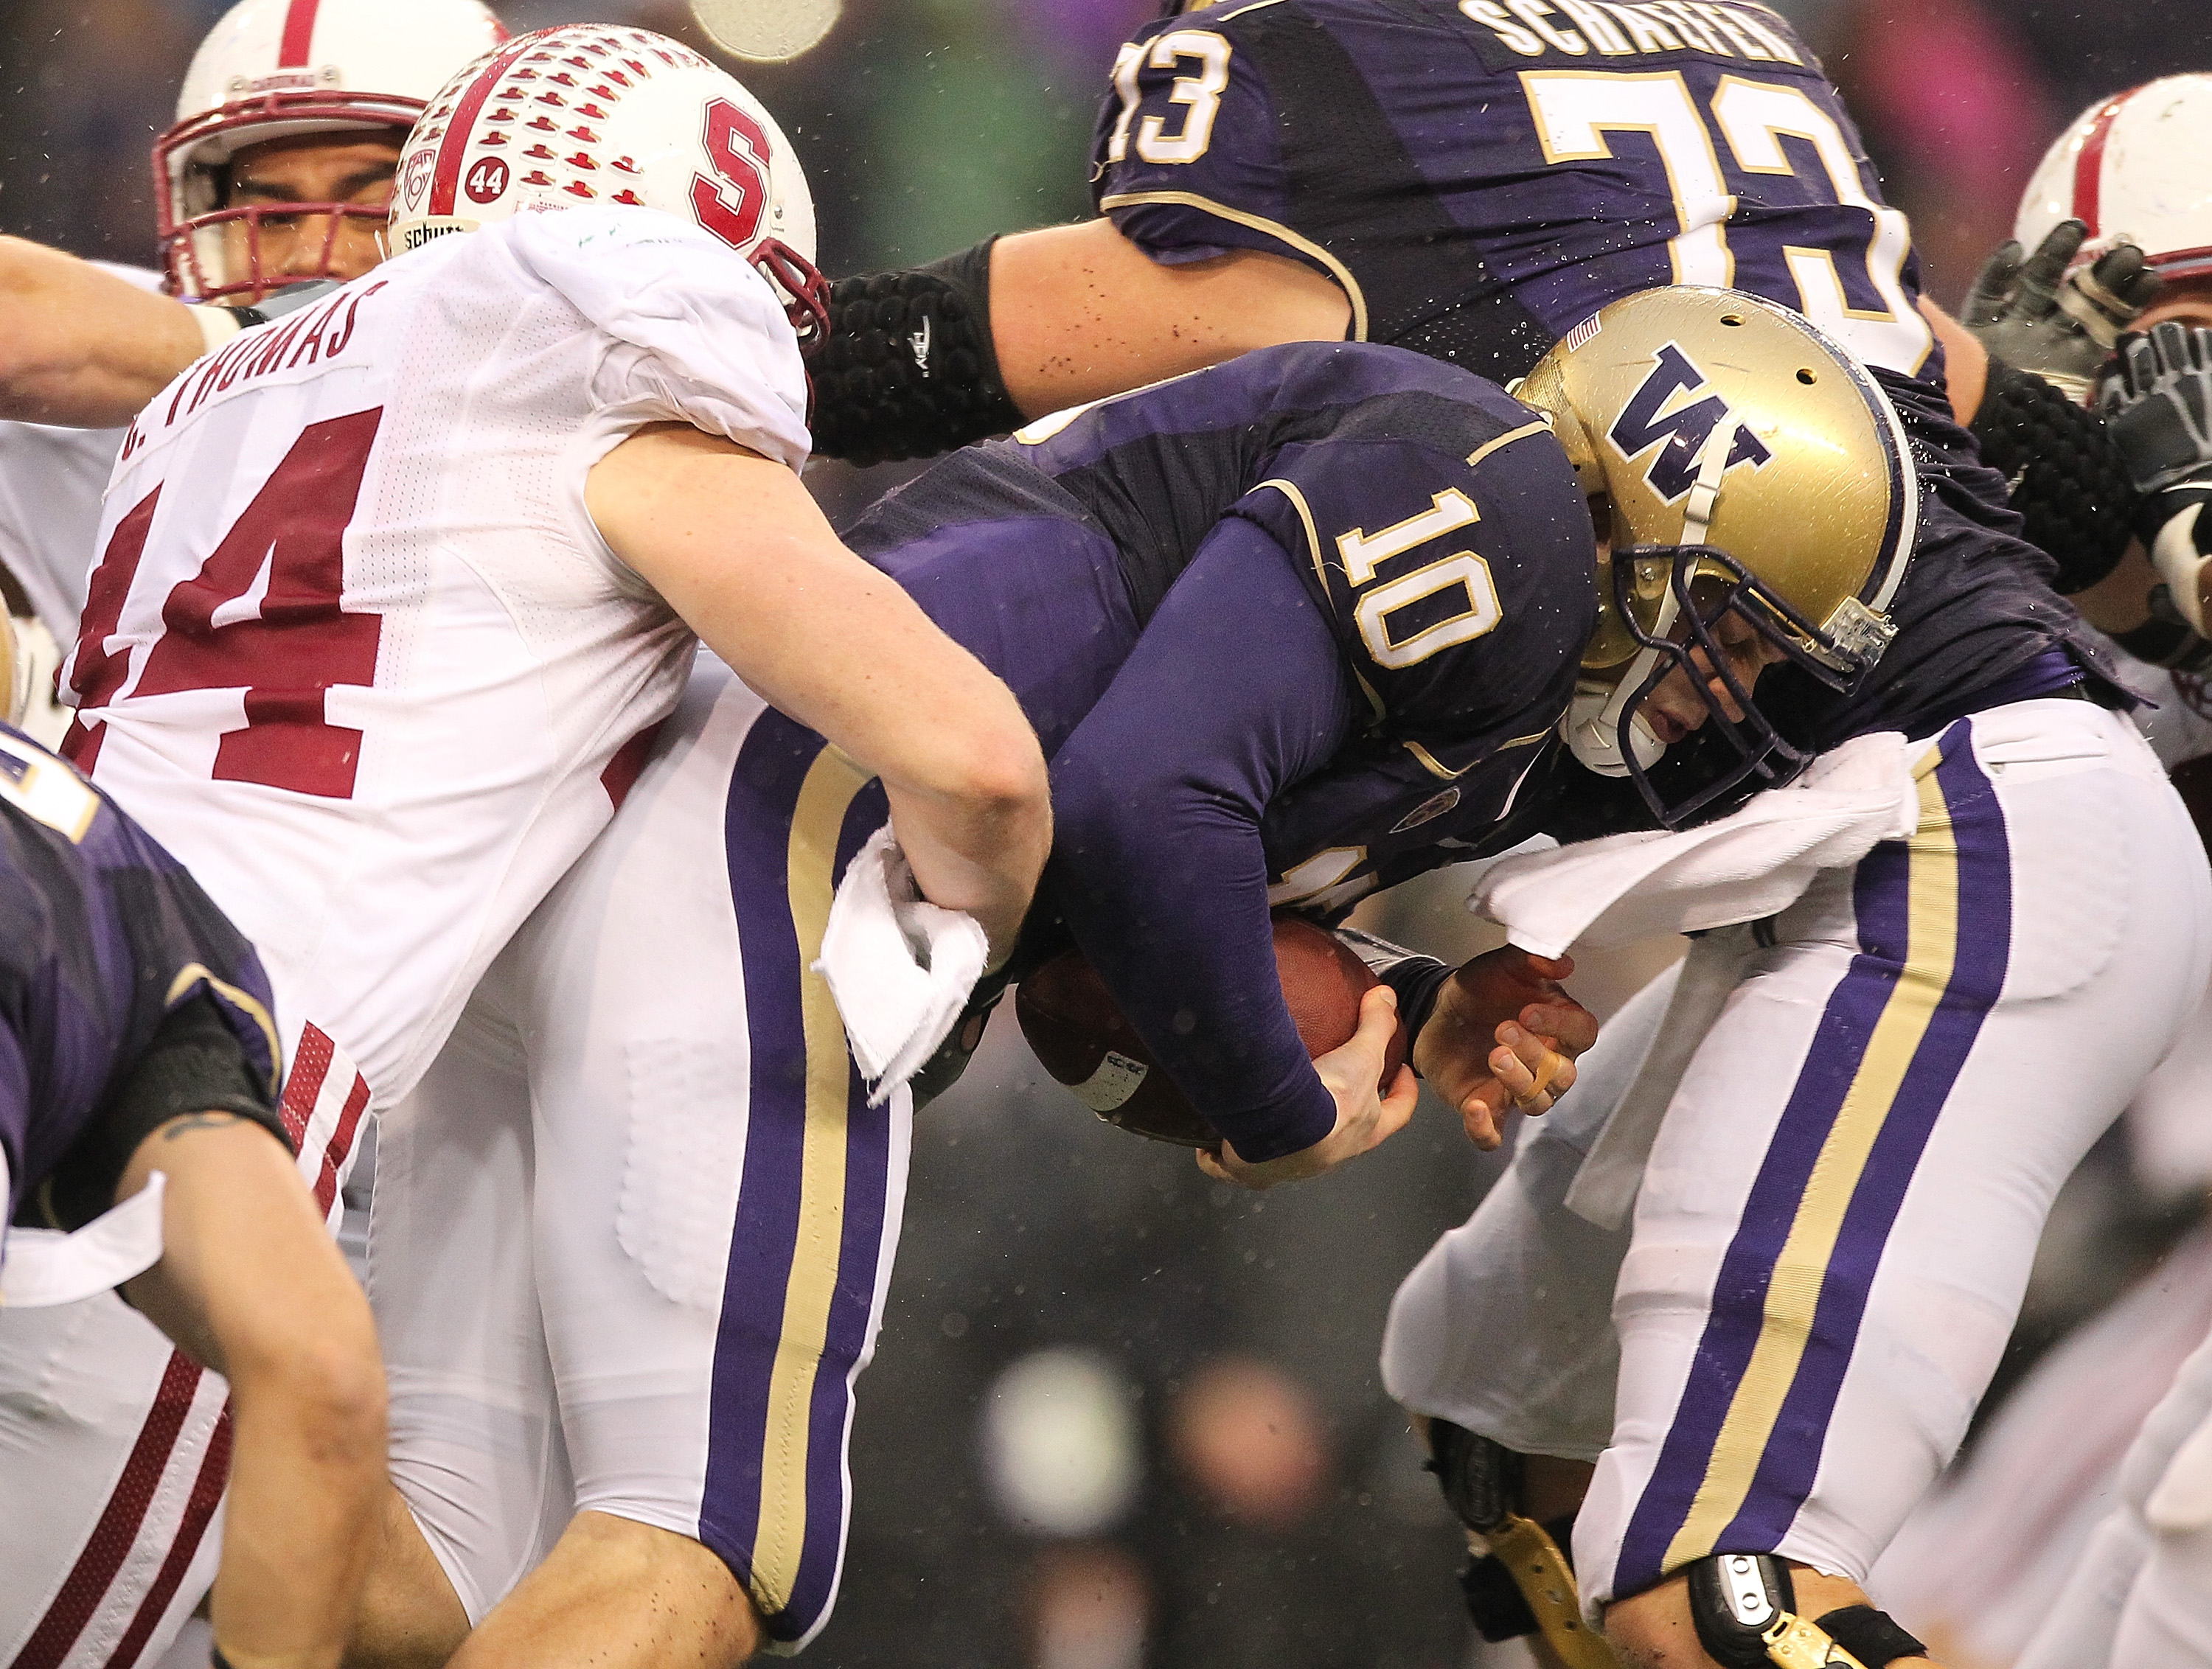 SEATTLE - OCTOBER 30:  Quarterback Jake Locker #10 of the Washington Huskies is tackled by Chase Thomas #44 of the Stanford Cardinal on October 30, 2010 at Husky Stadium in Seattle, Washington. (Photo by Otto Greule Jr/Getty Images)